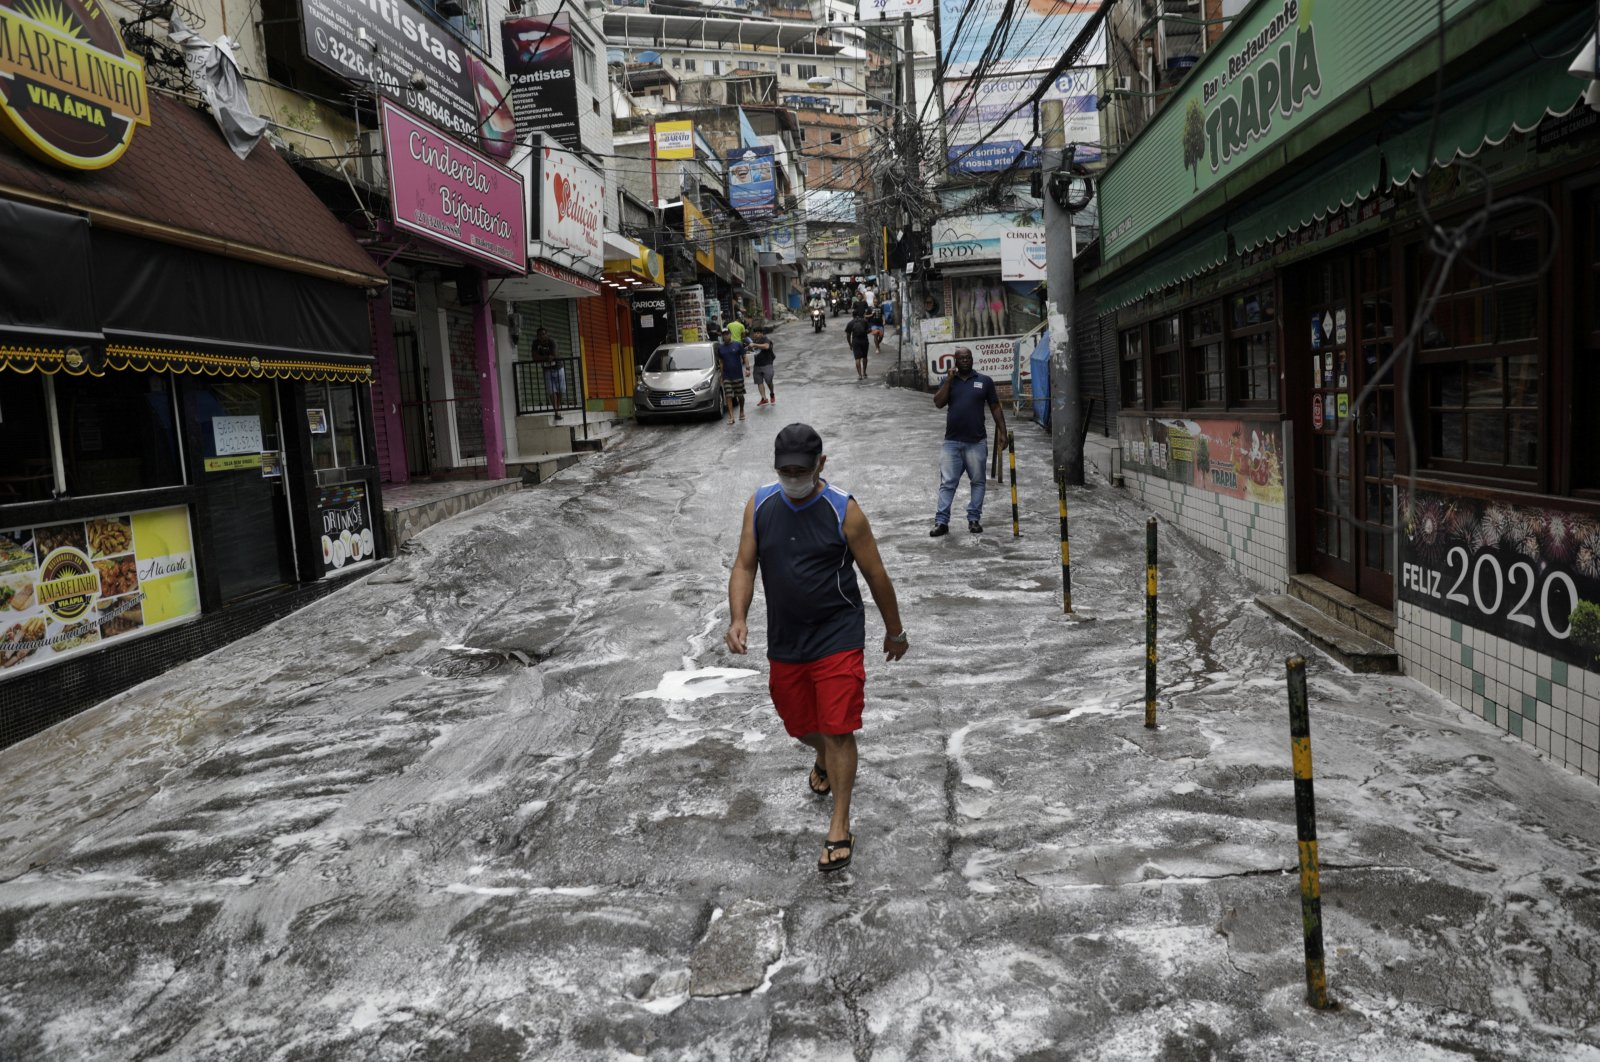 A man wearing a protective mask walks on a street disinfected by cleaners during the  COVID-19 outbreak, at the Rocinha slum in Rio de Janeiro, Brazil April 10, 2020. (REUTERS Photo)